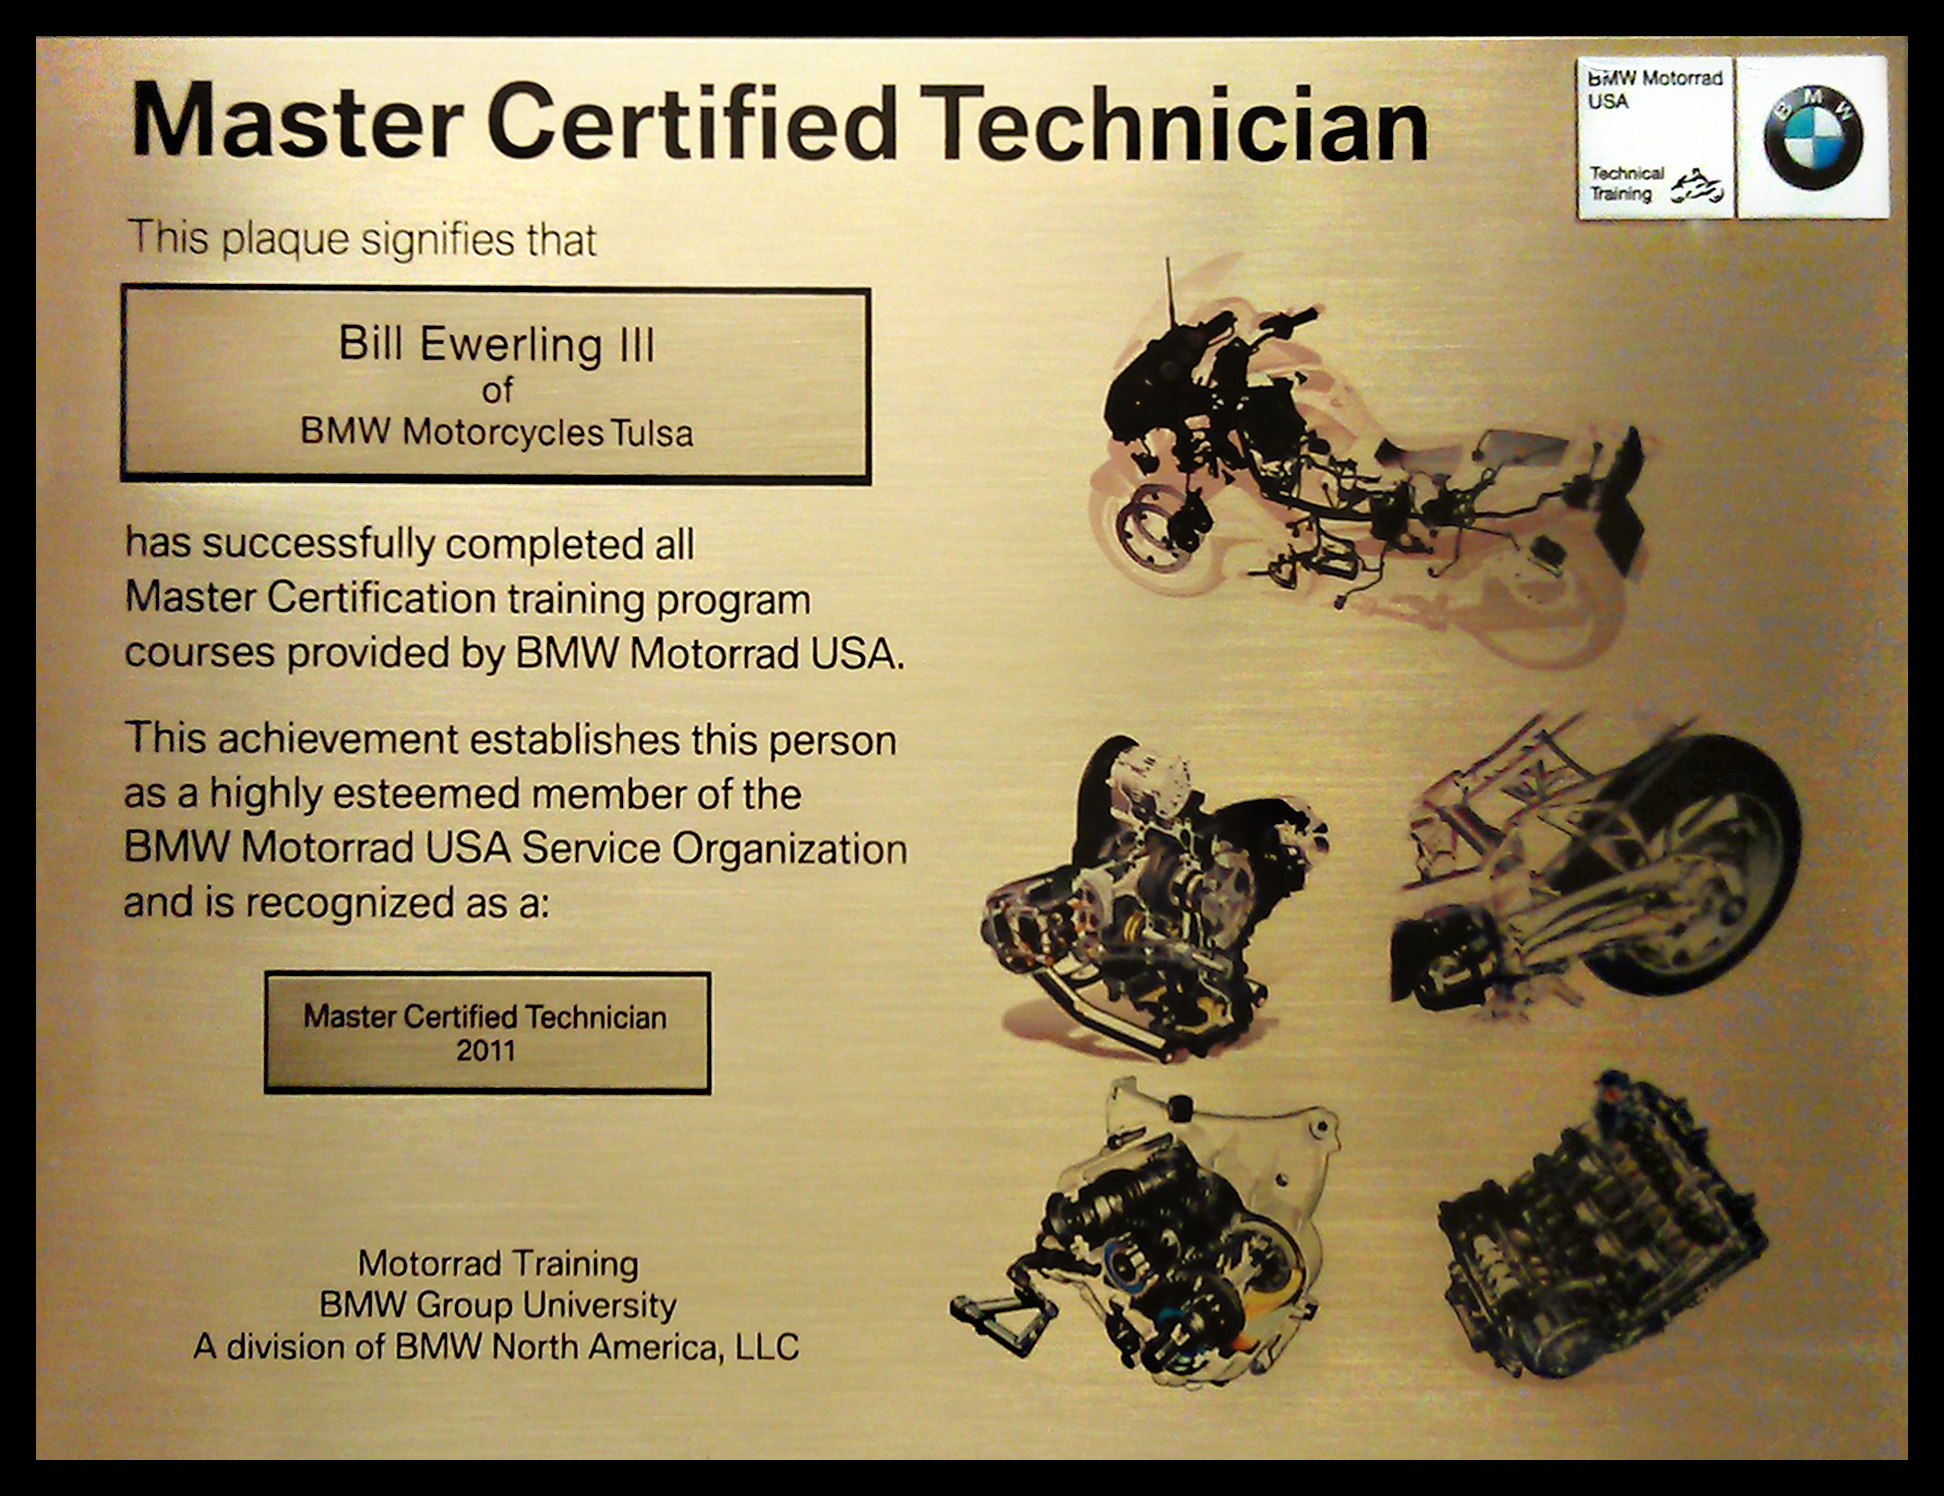 Bmw motorcycle sales tel 9183070477 toll free 8882192252 our certified master technicians 2011 training awards xflitez Gallery